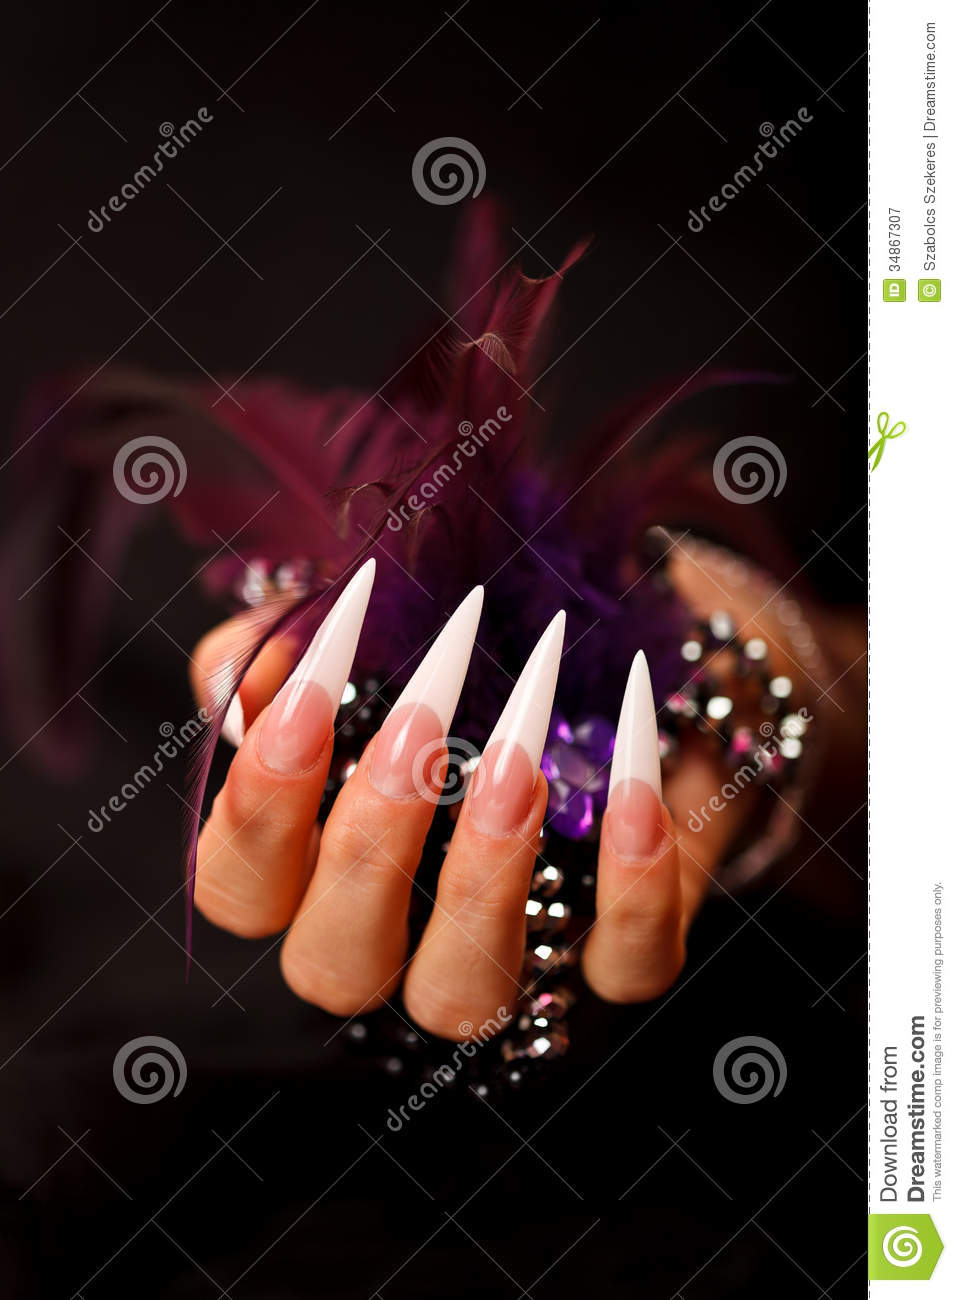 Black Pointed Nails Pointed nails